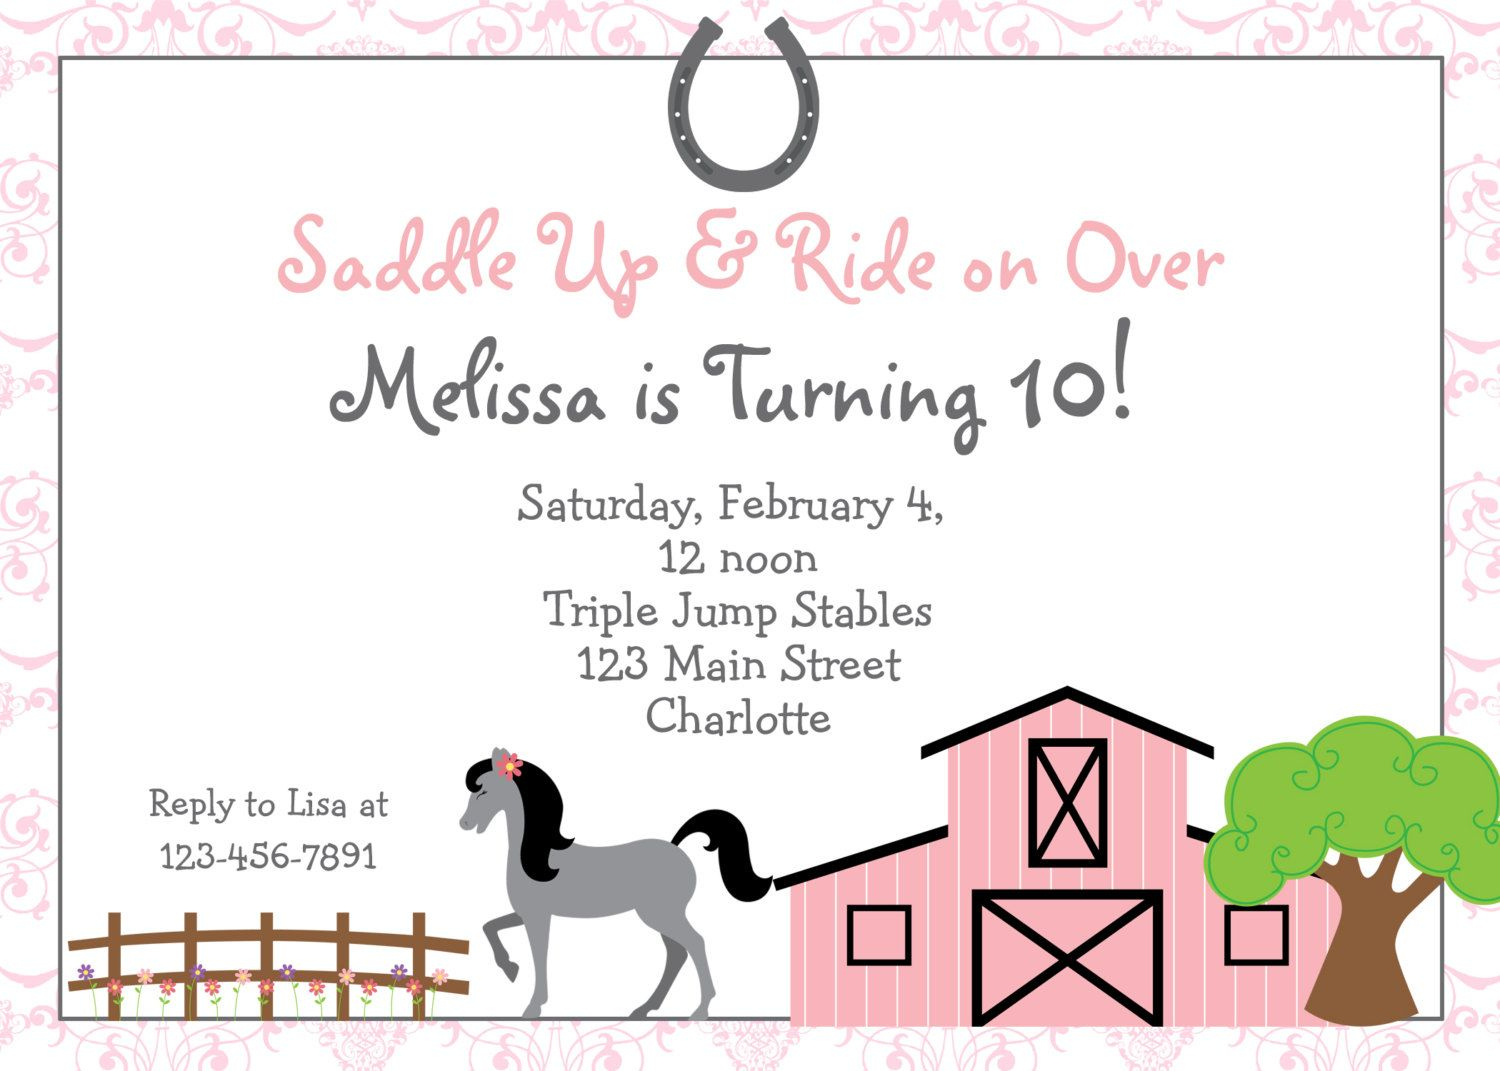 Free Printable Horse Riding Party Invitations   Birthday Invitation - Free Printable Horse Themed Birthday Party Invitations